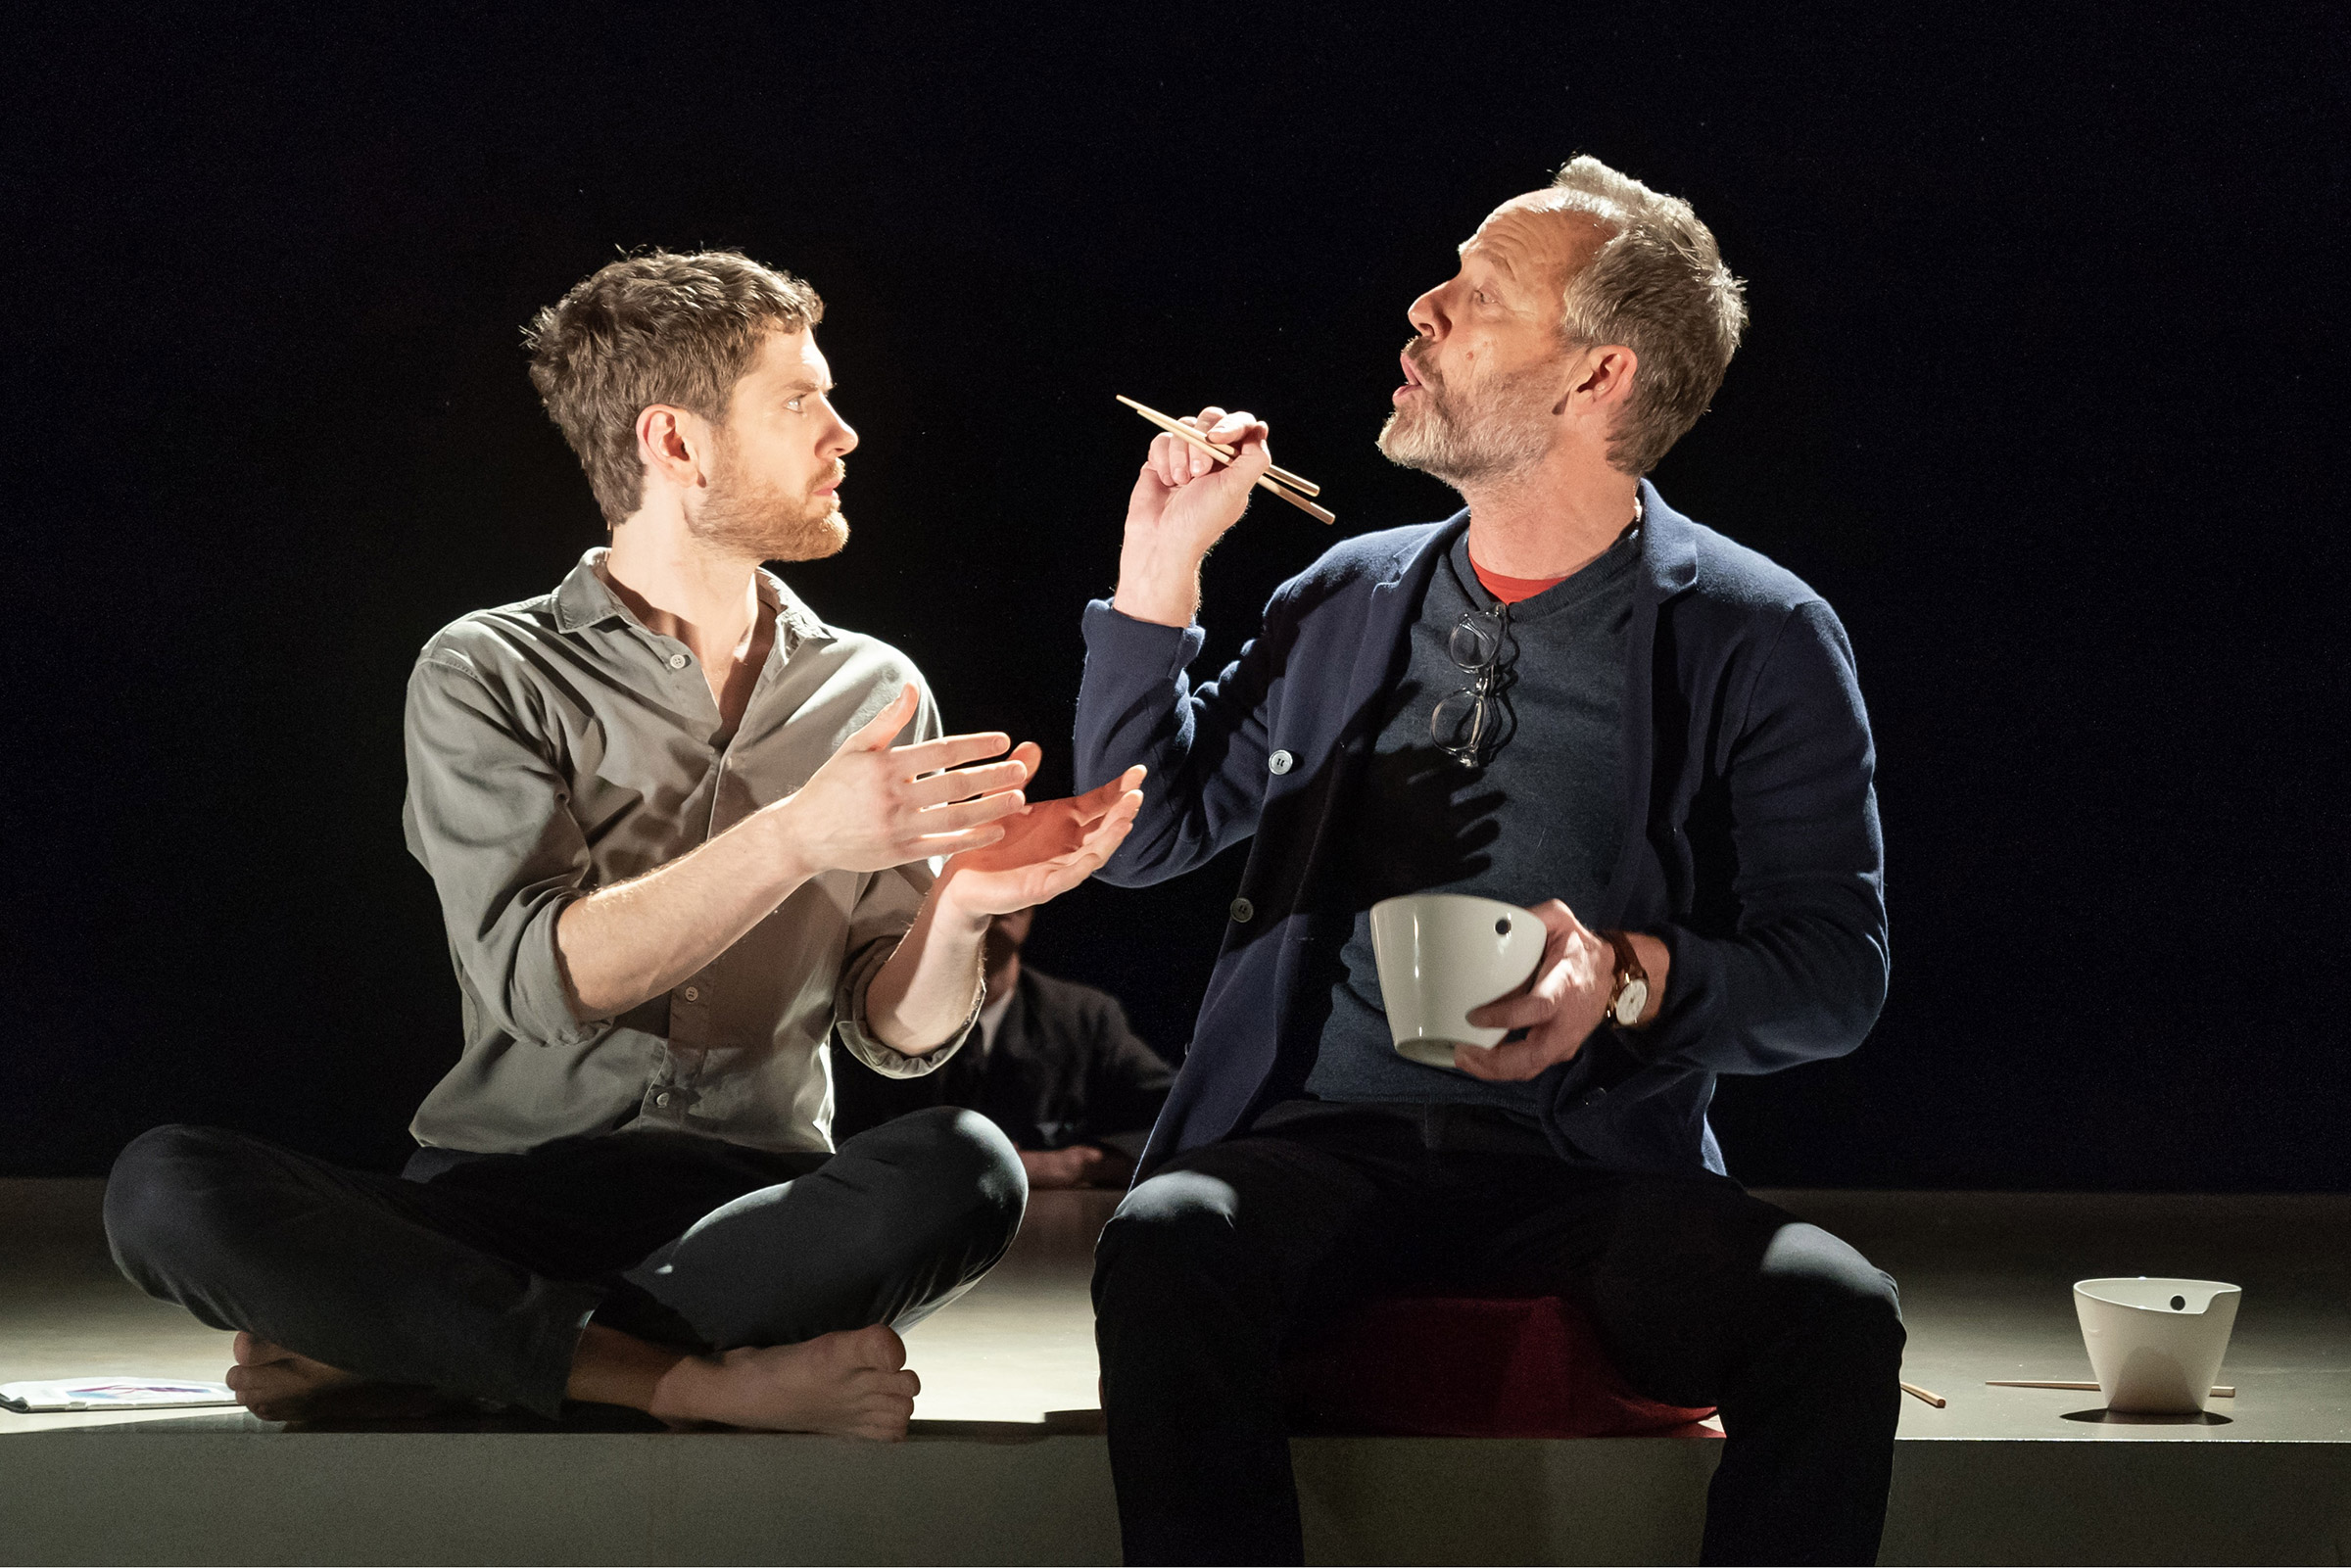 The Inheritance swept the Olivier awards earlier in 2019.